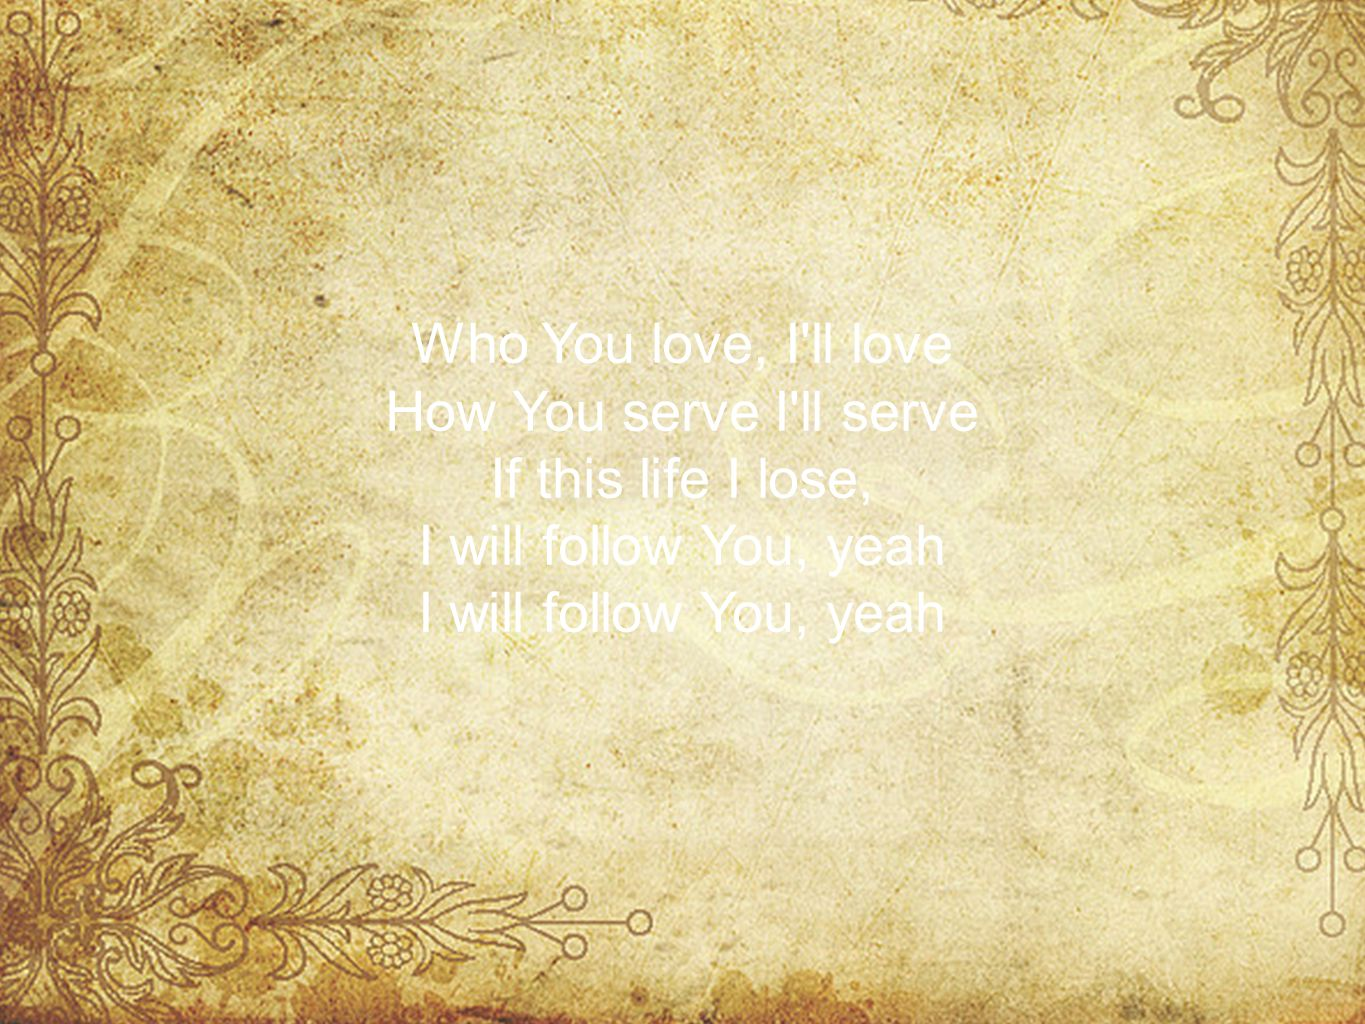 Who You love, I ll love How You serve I ll serve If this life I lose, I will follow You, yeah